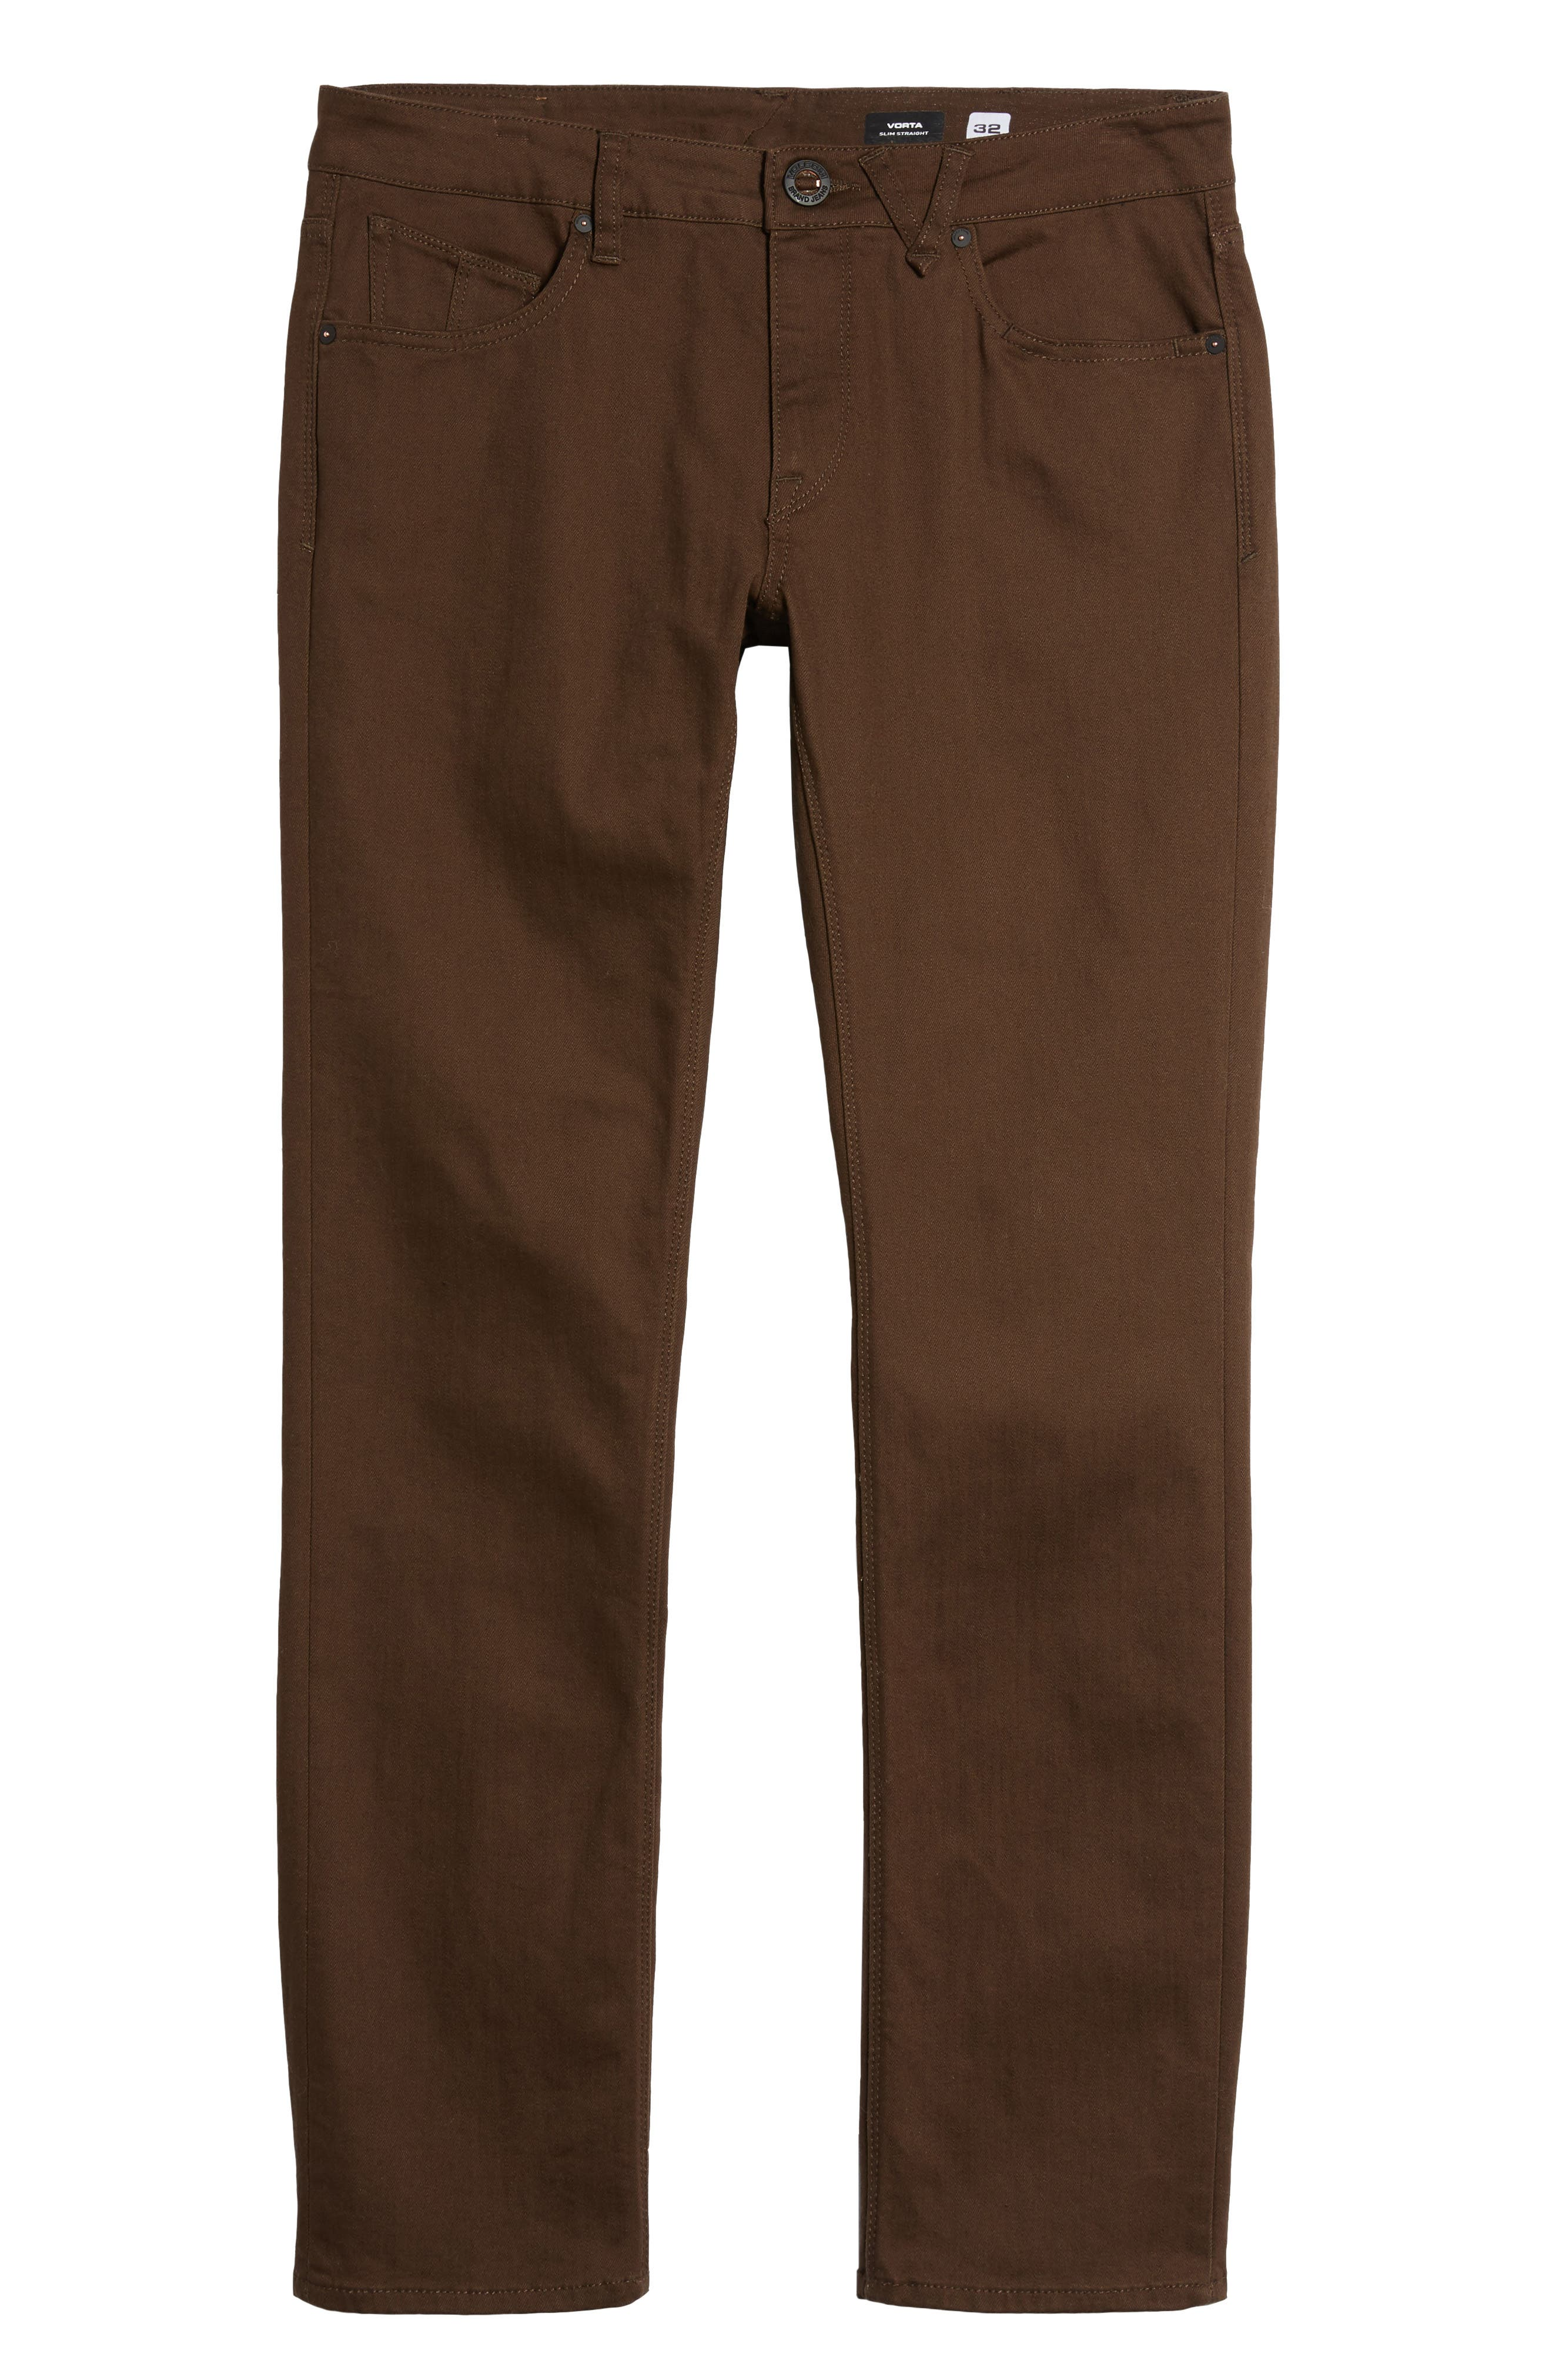 Vorta Slub Pants,                             Alternate thumbnail 10, color,